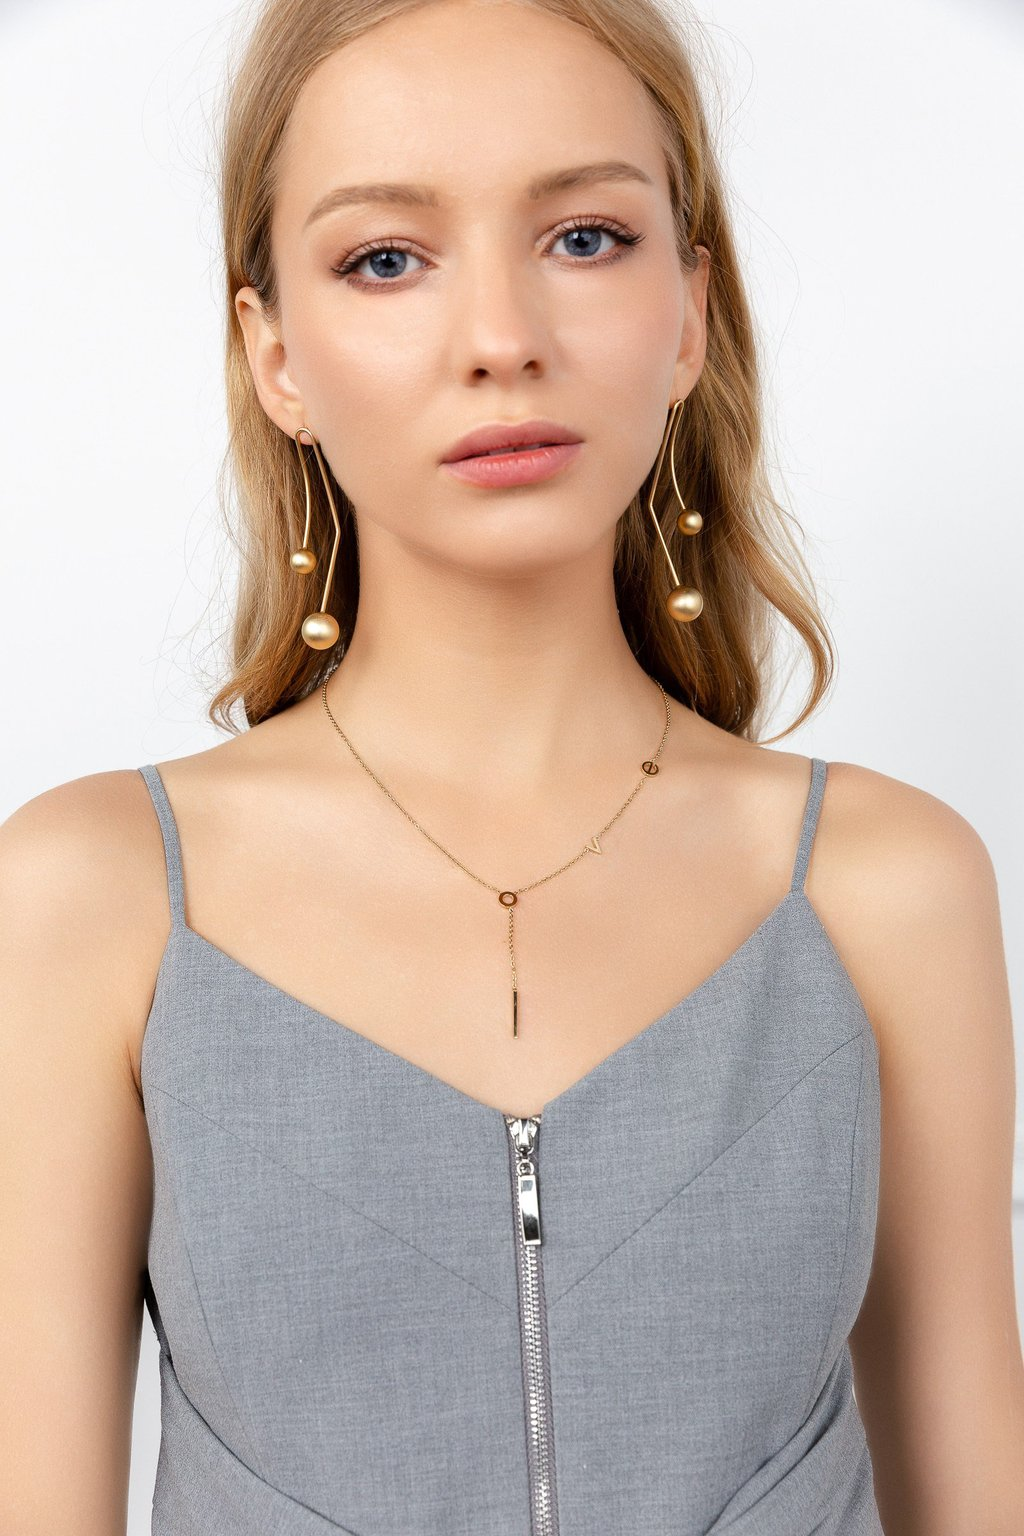 Banks Earrings by J.ING women's clothing and accessories